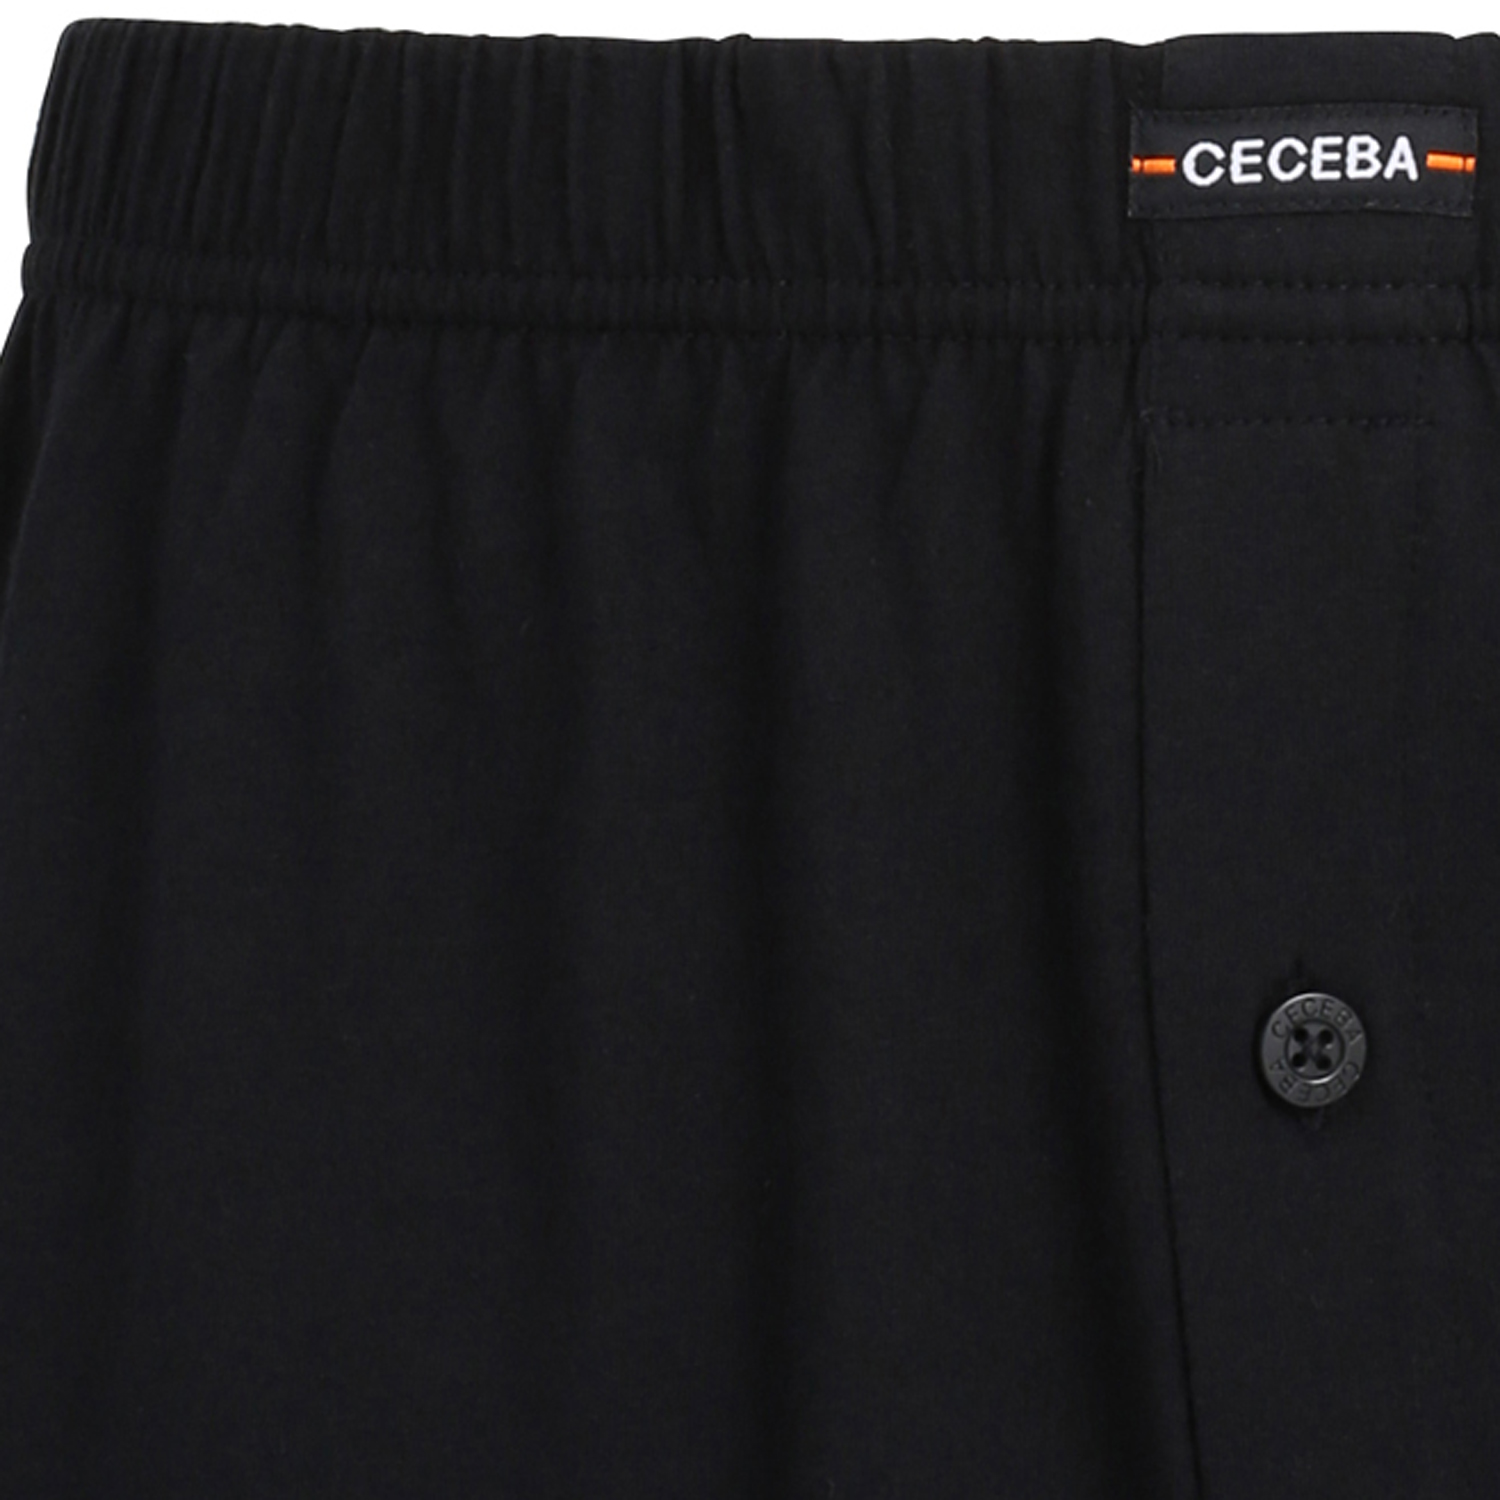 Detail Image to Boxershorts in black by Ceceba up to oversize 18- double pack